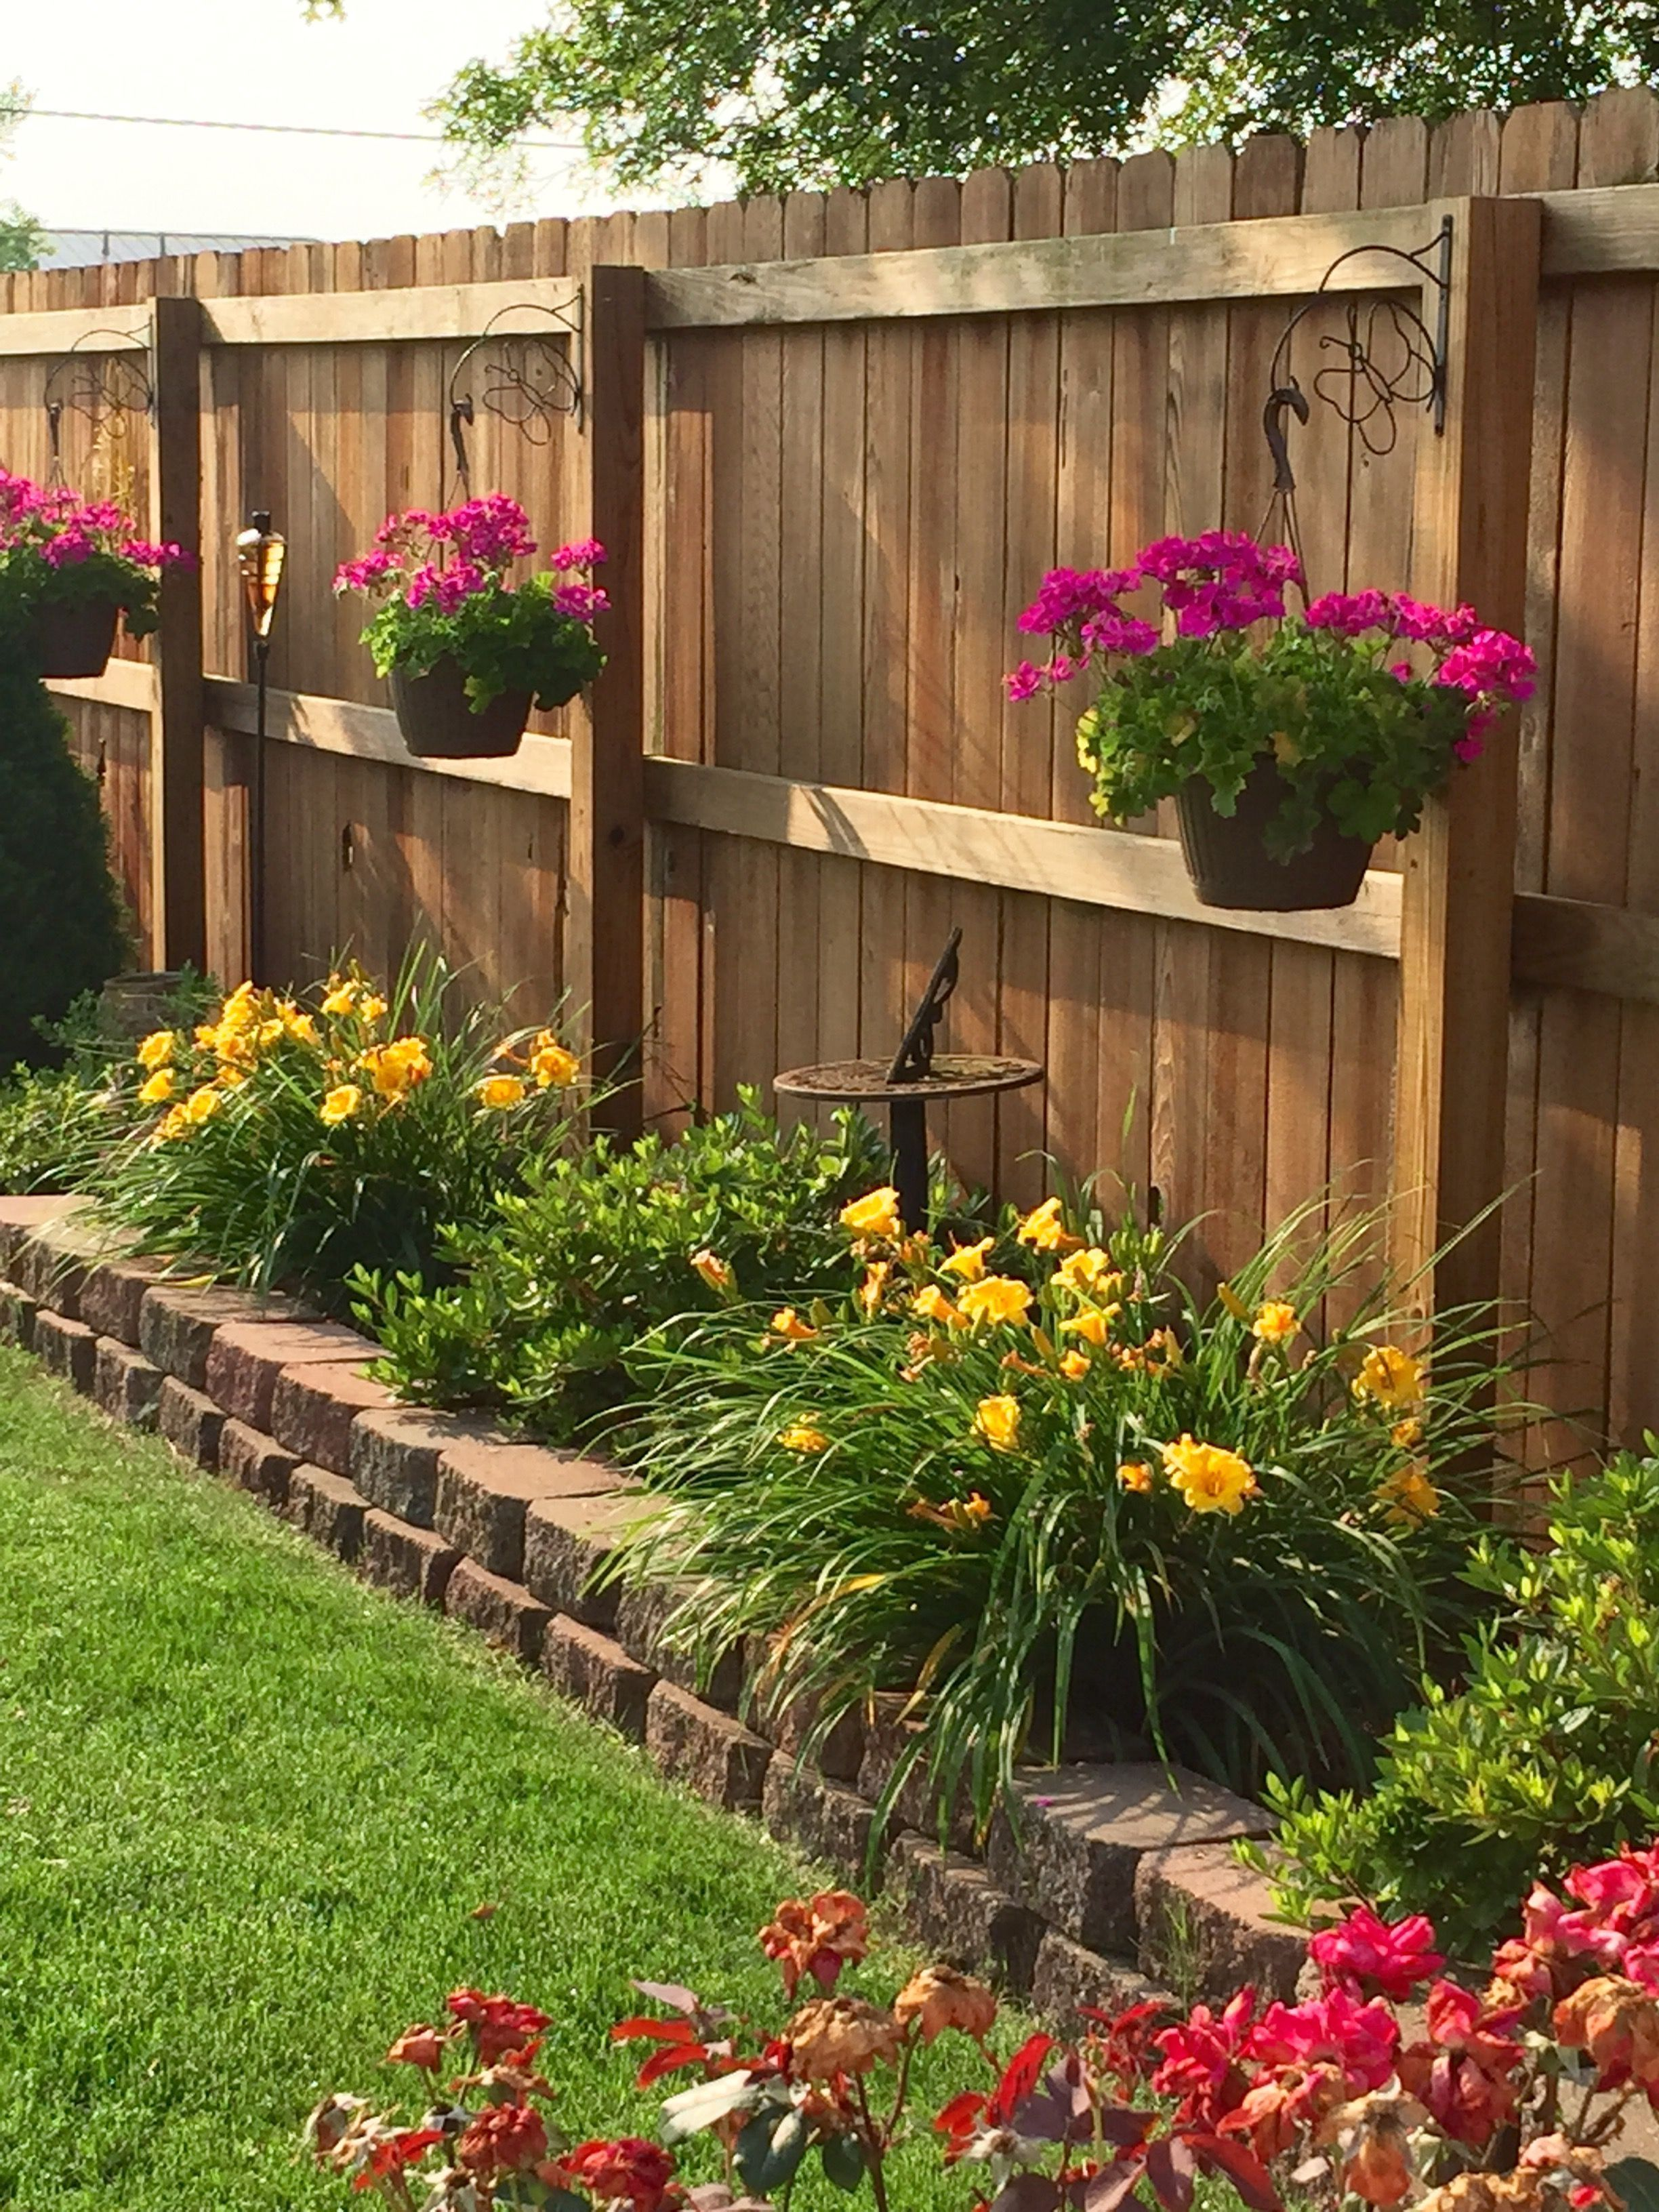 14 Smart Ways How to Make Backyard Landscape Ideas On A Budget